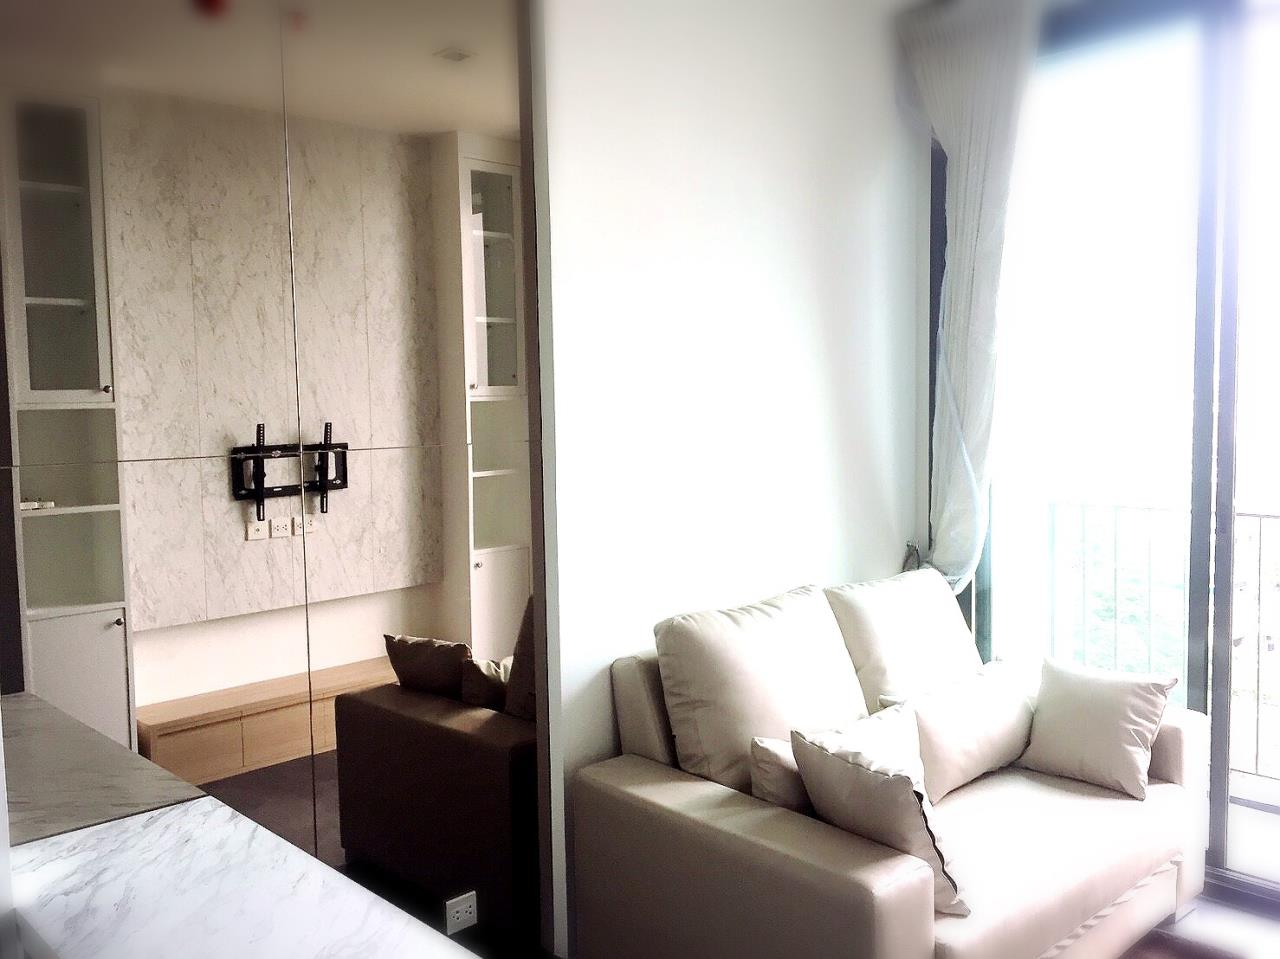 Century21 Skylux Agency's Edge Sukhumvit 23 / Condo For Rent / 1 Bedroom / 33 SQM / BTS Asok / Bangkok 2